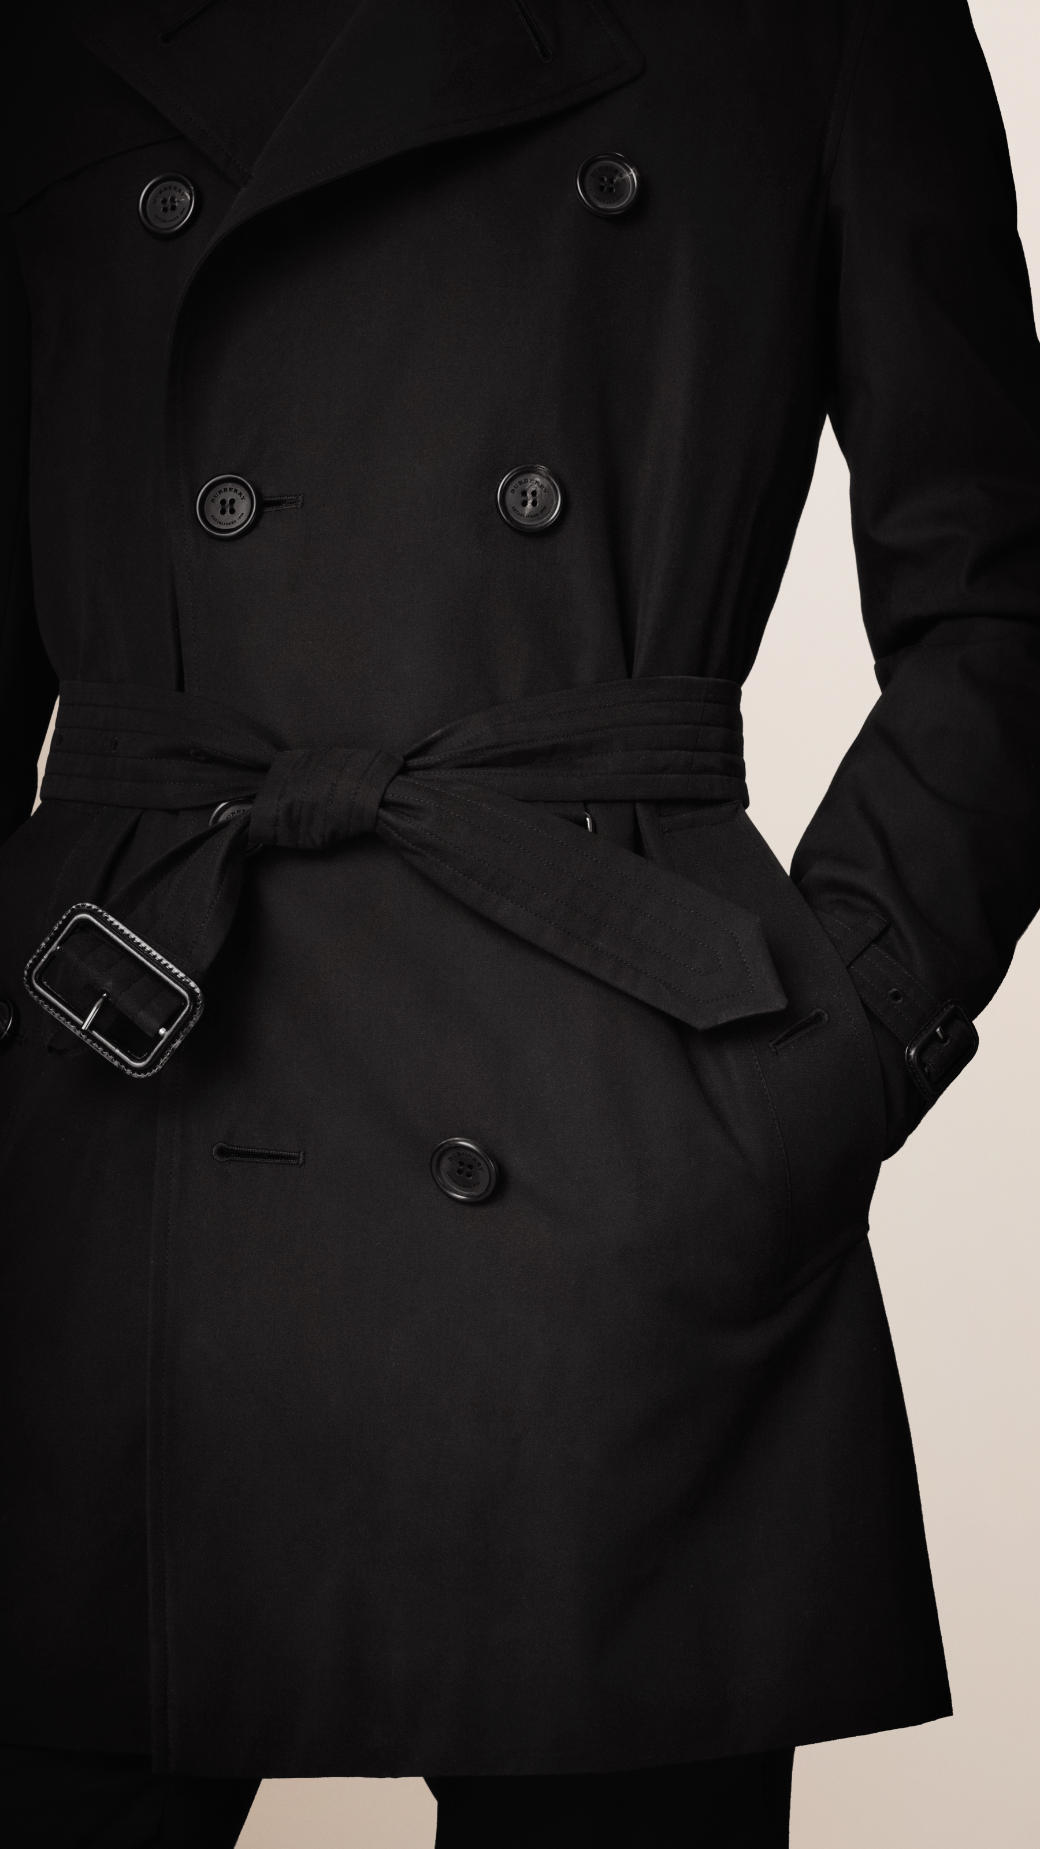 Black dress mid length trench